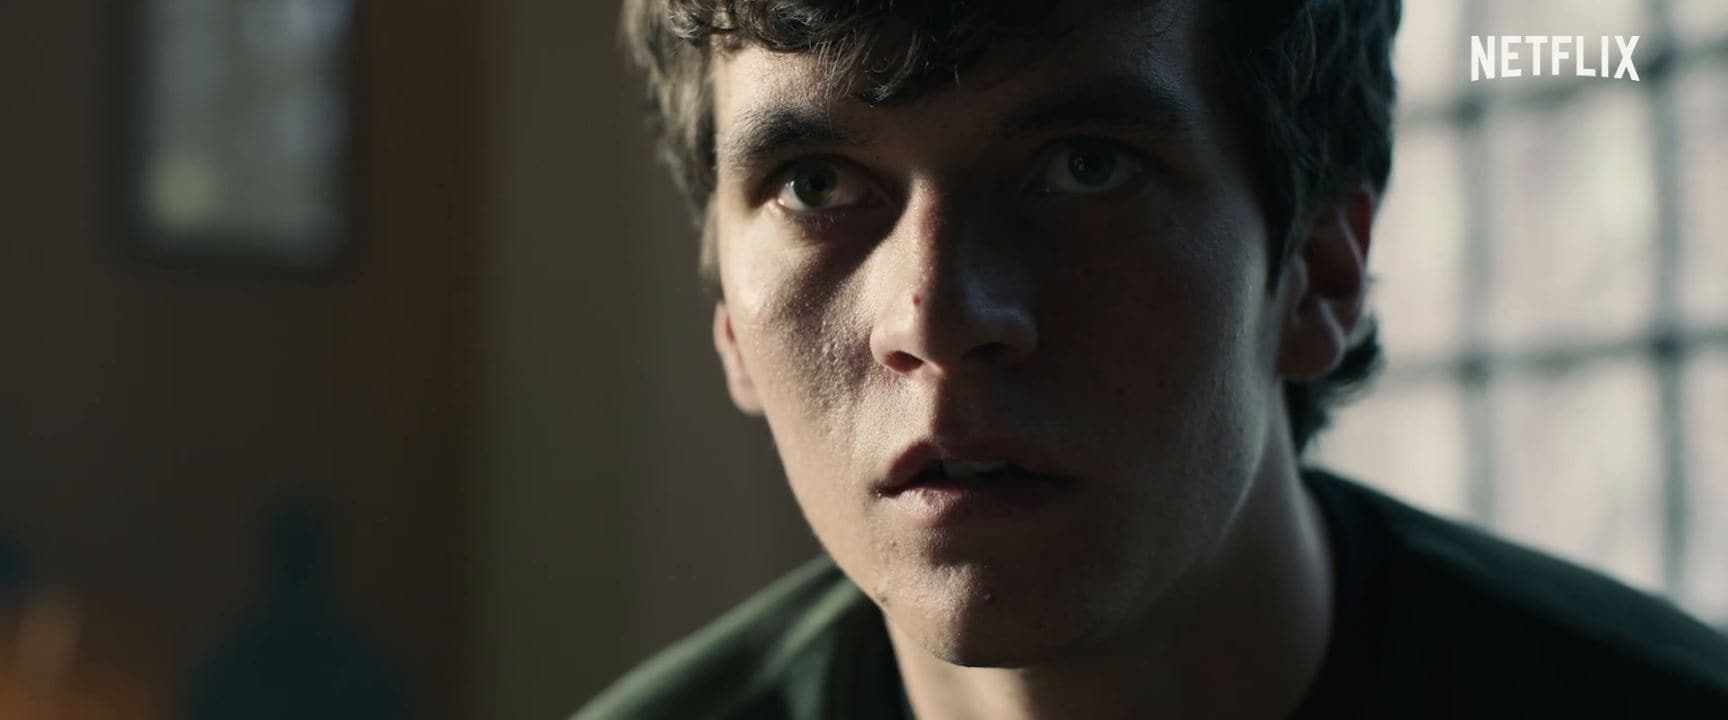 Black Mirror: Bandersnatch Trailer Confirms Friday Release Date on Netflix